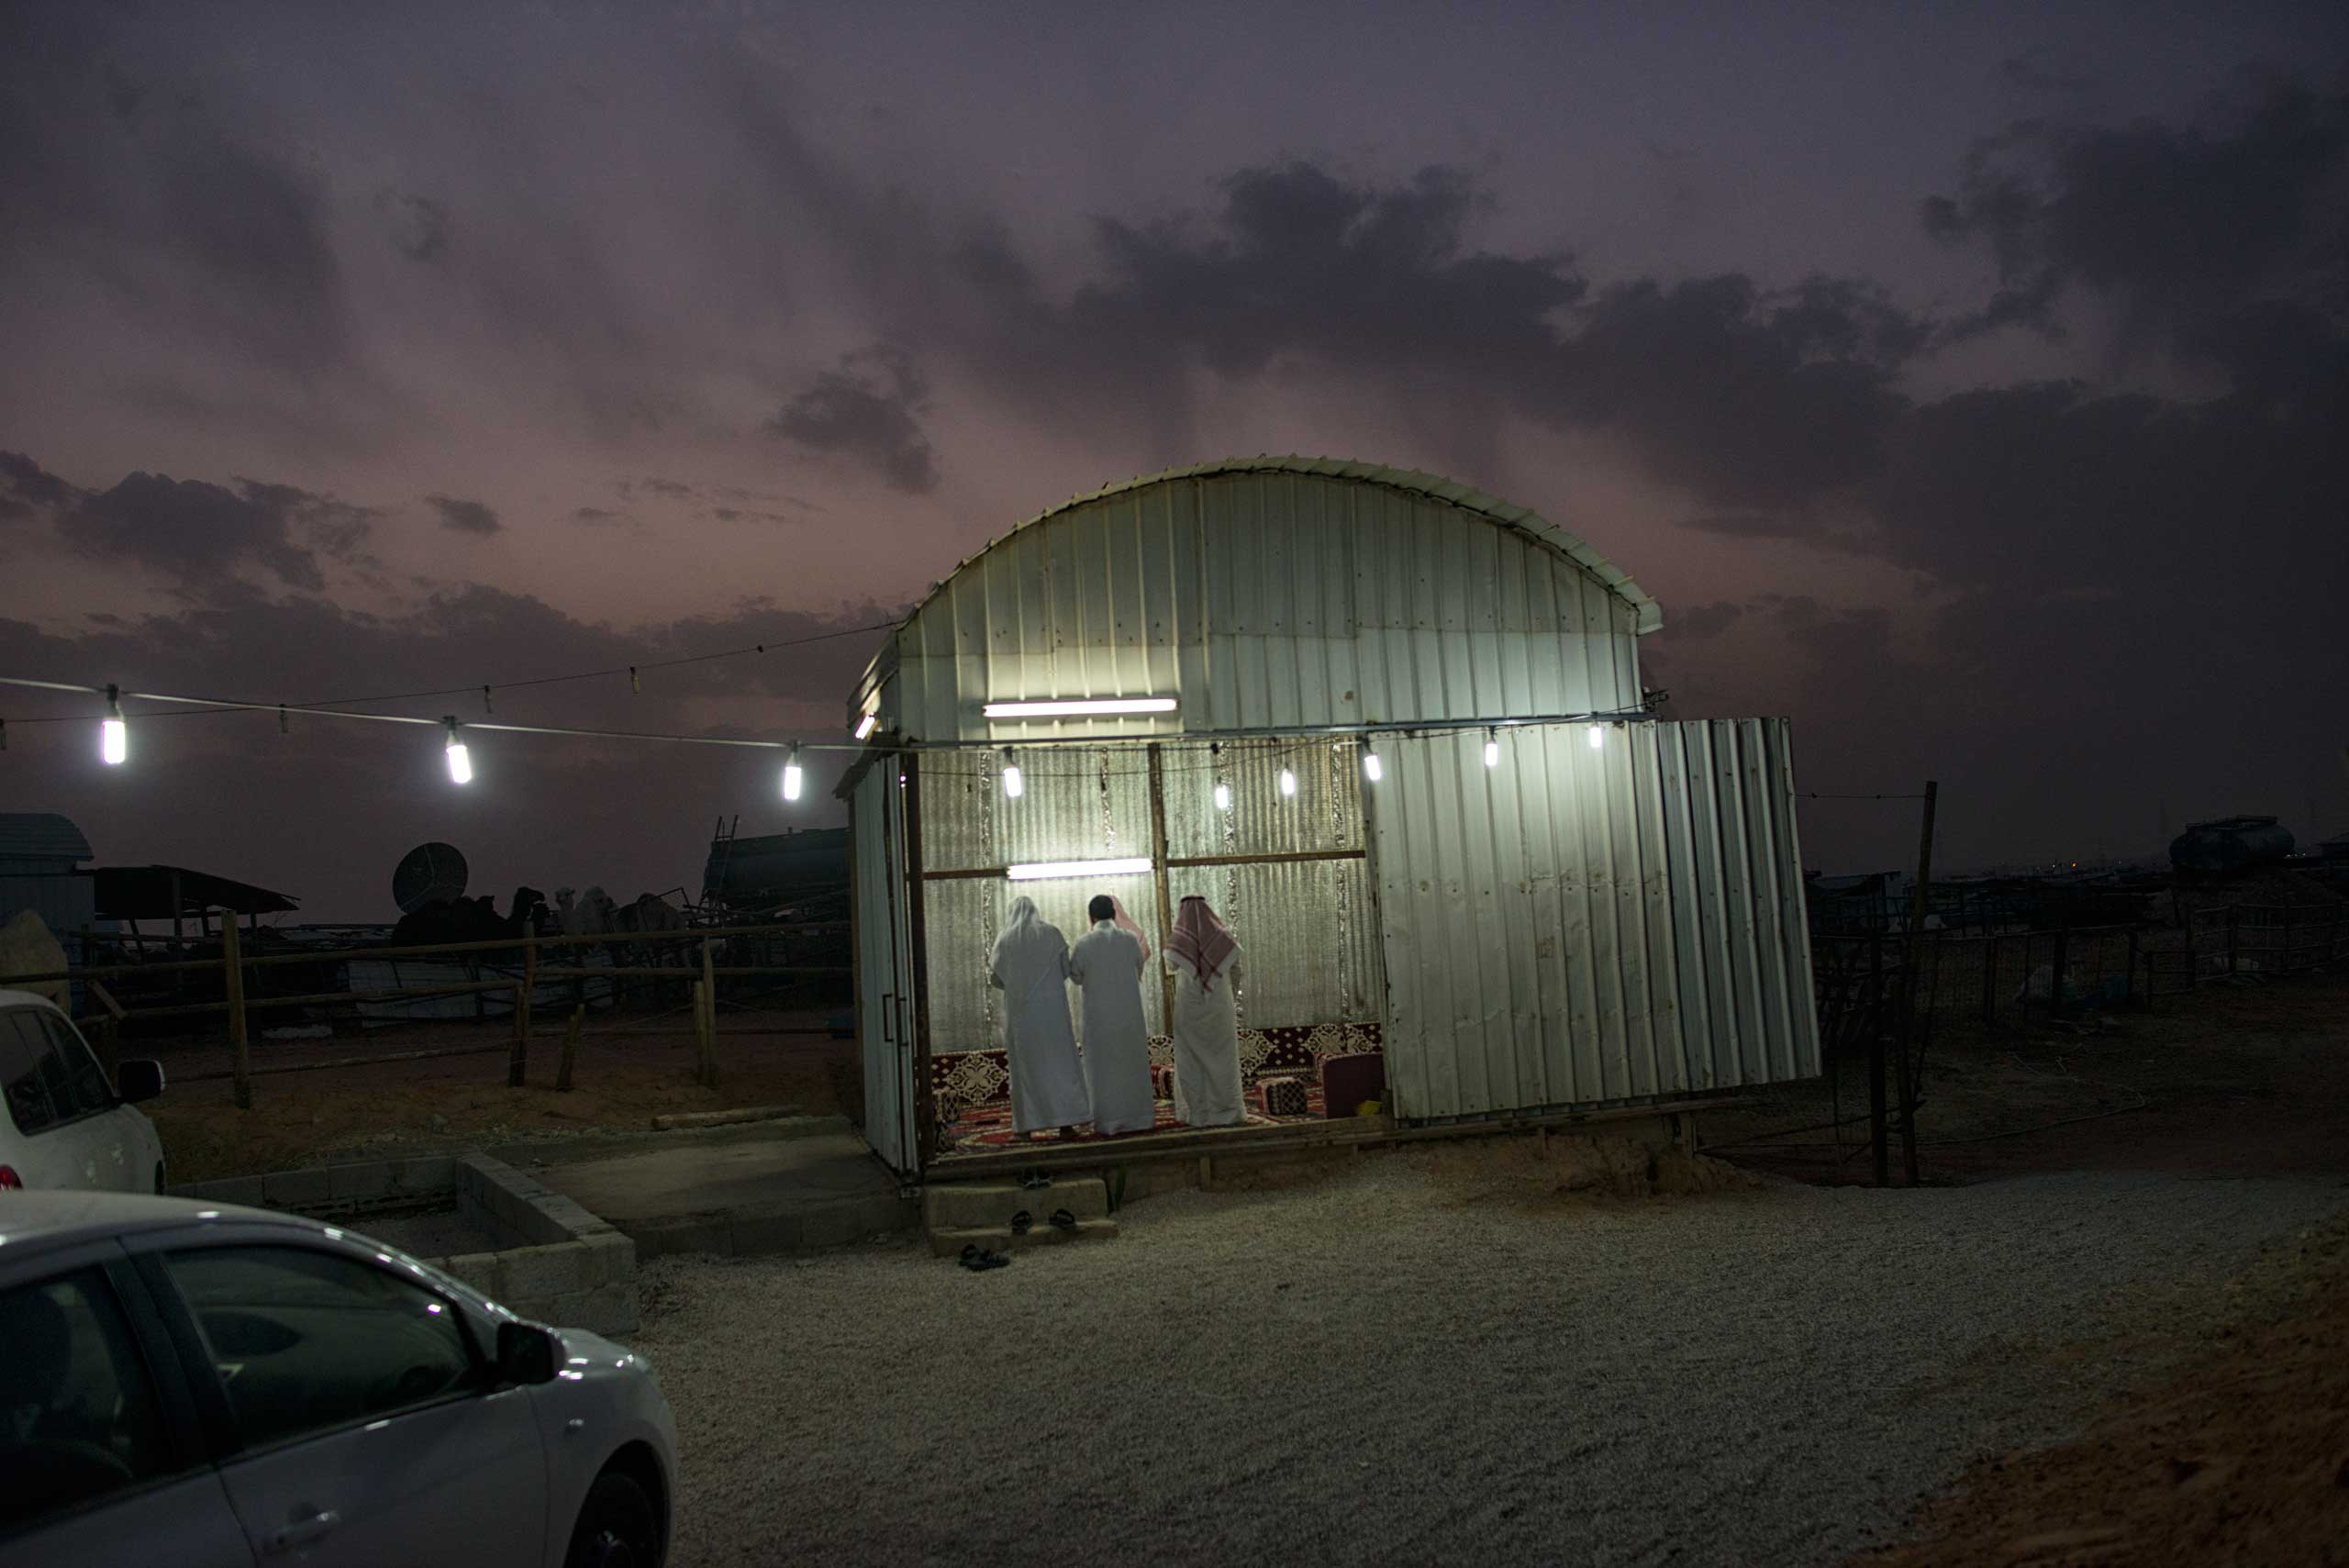 Saudi men pray at dusk at a camel market outside of Riyadh.